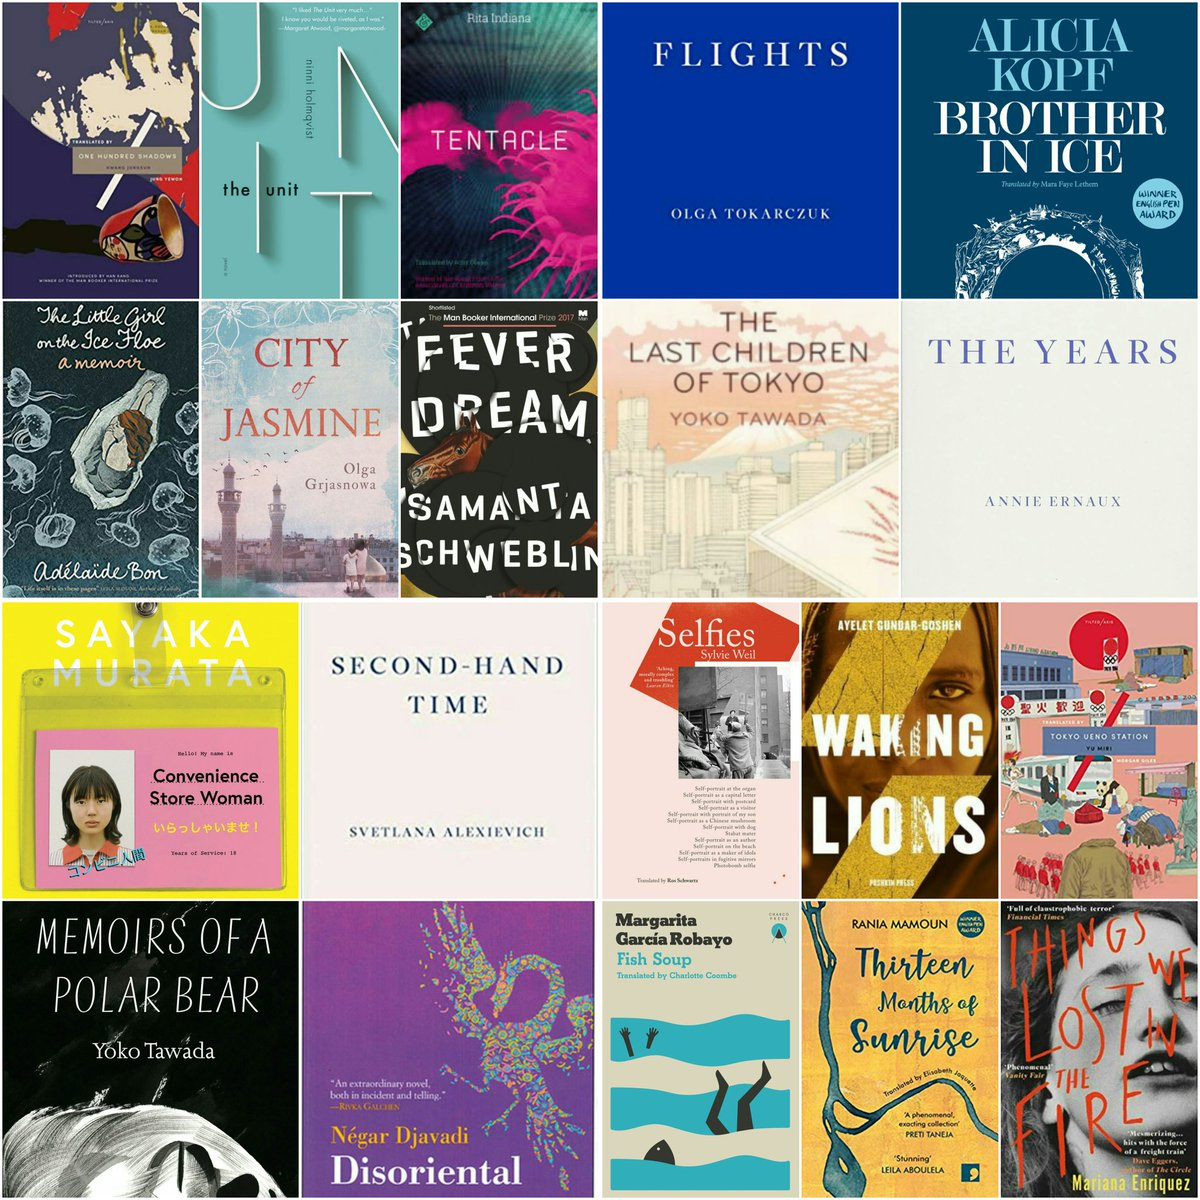 Im off on holiday for 2 weeks now, so heres a pre-#WITMonth blog post with summer reading recommendations that celebrate #womenintranslation: 20 brilliant books in 10 categories - something for everyone to enjoy! Catch up with you all in August 😎 blogs.exeter.ac.uk/translatingwom…